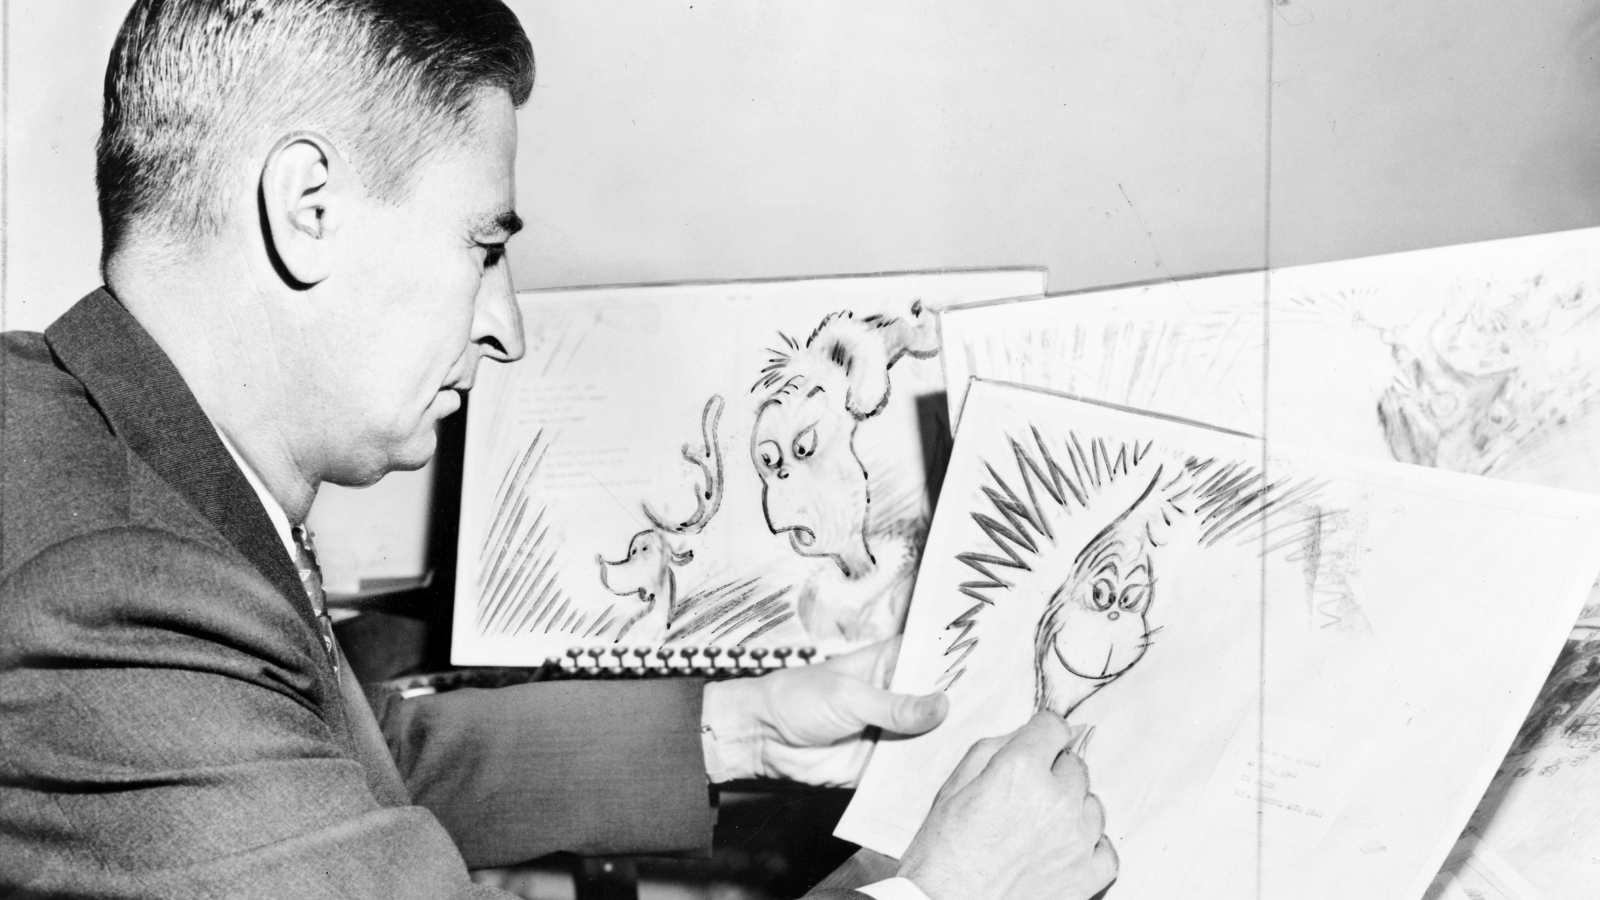 Was the Grinch Based on Dr. Seuss?